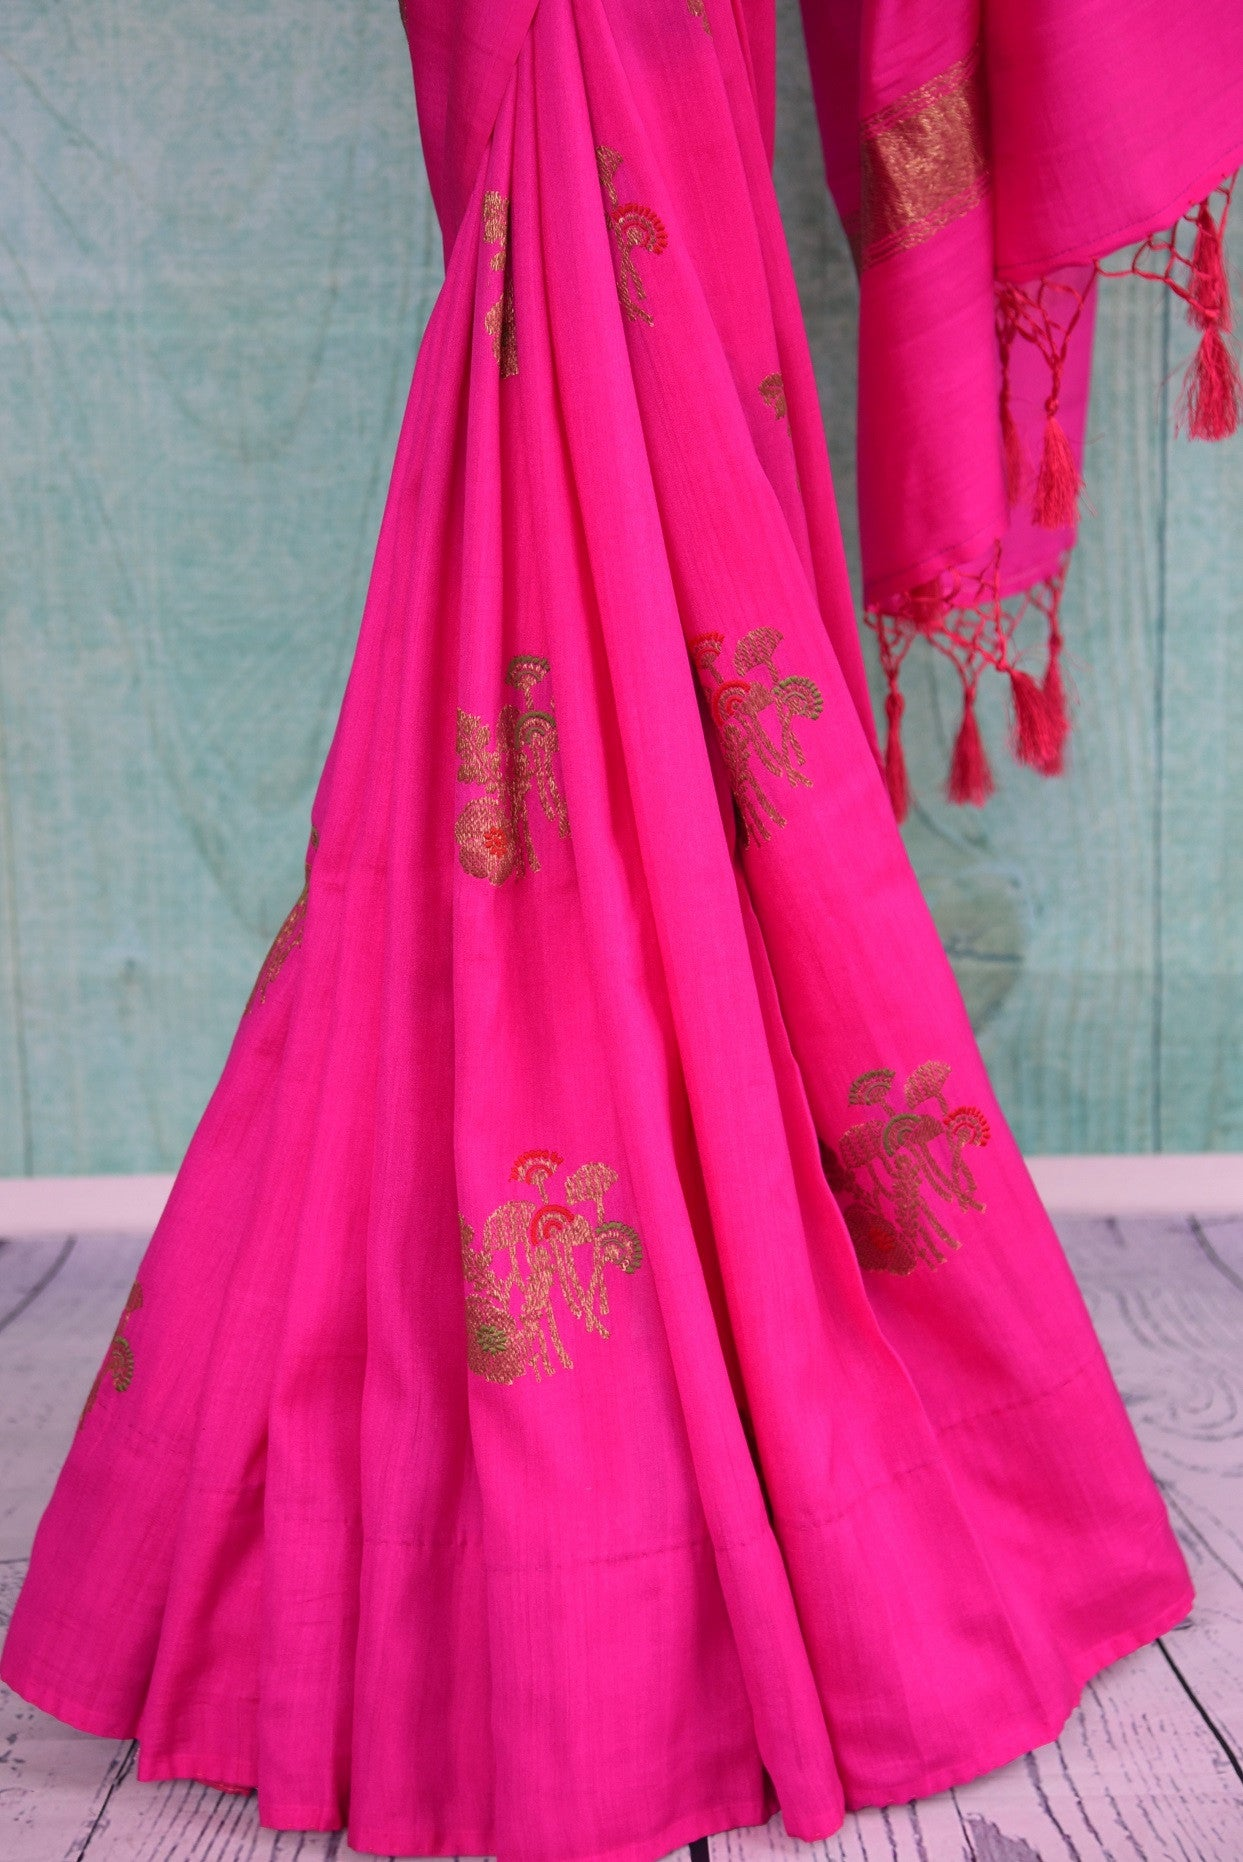 90D440 Rani pink saree with traditional golden motifs, available at Pure Elegance, our Indian wear store in USA. The traditional tussar georgette Banarasi saree the perfect pick for Indian weddings functions.